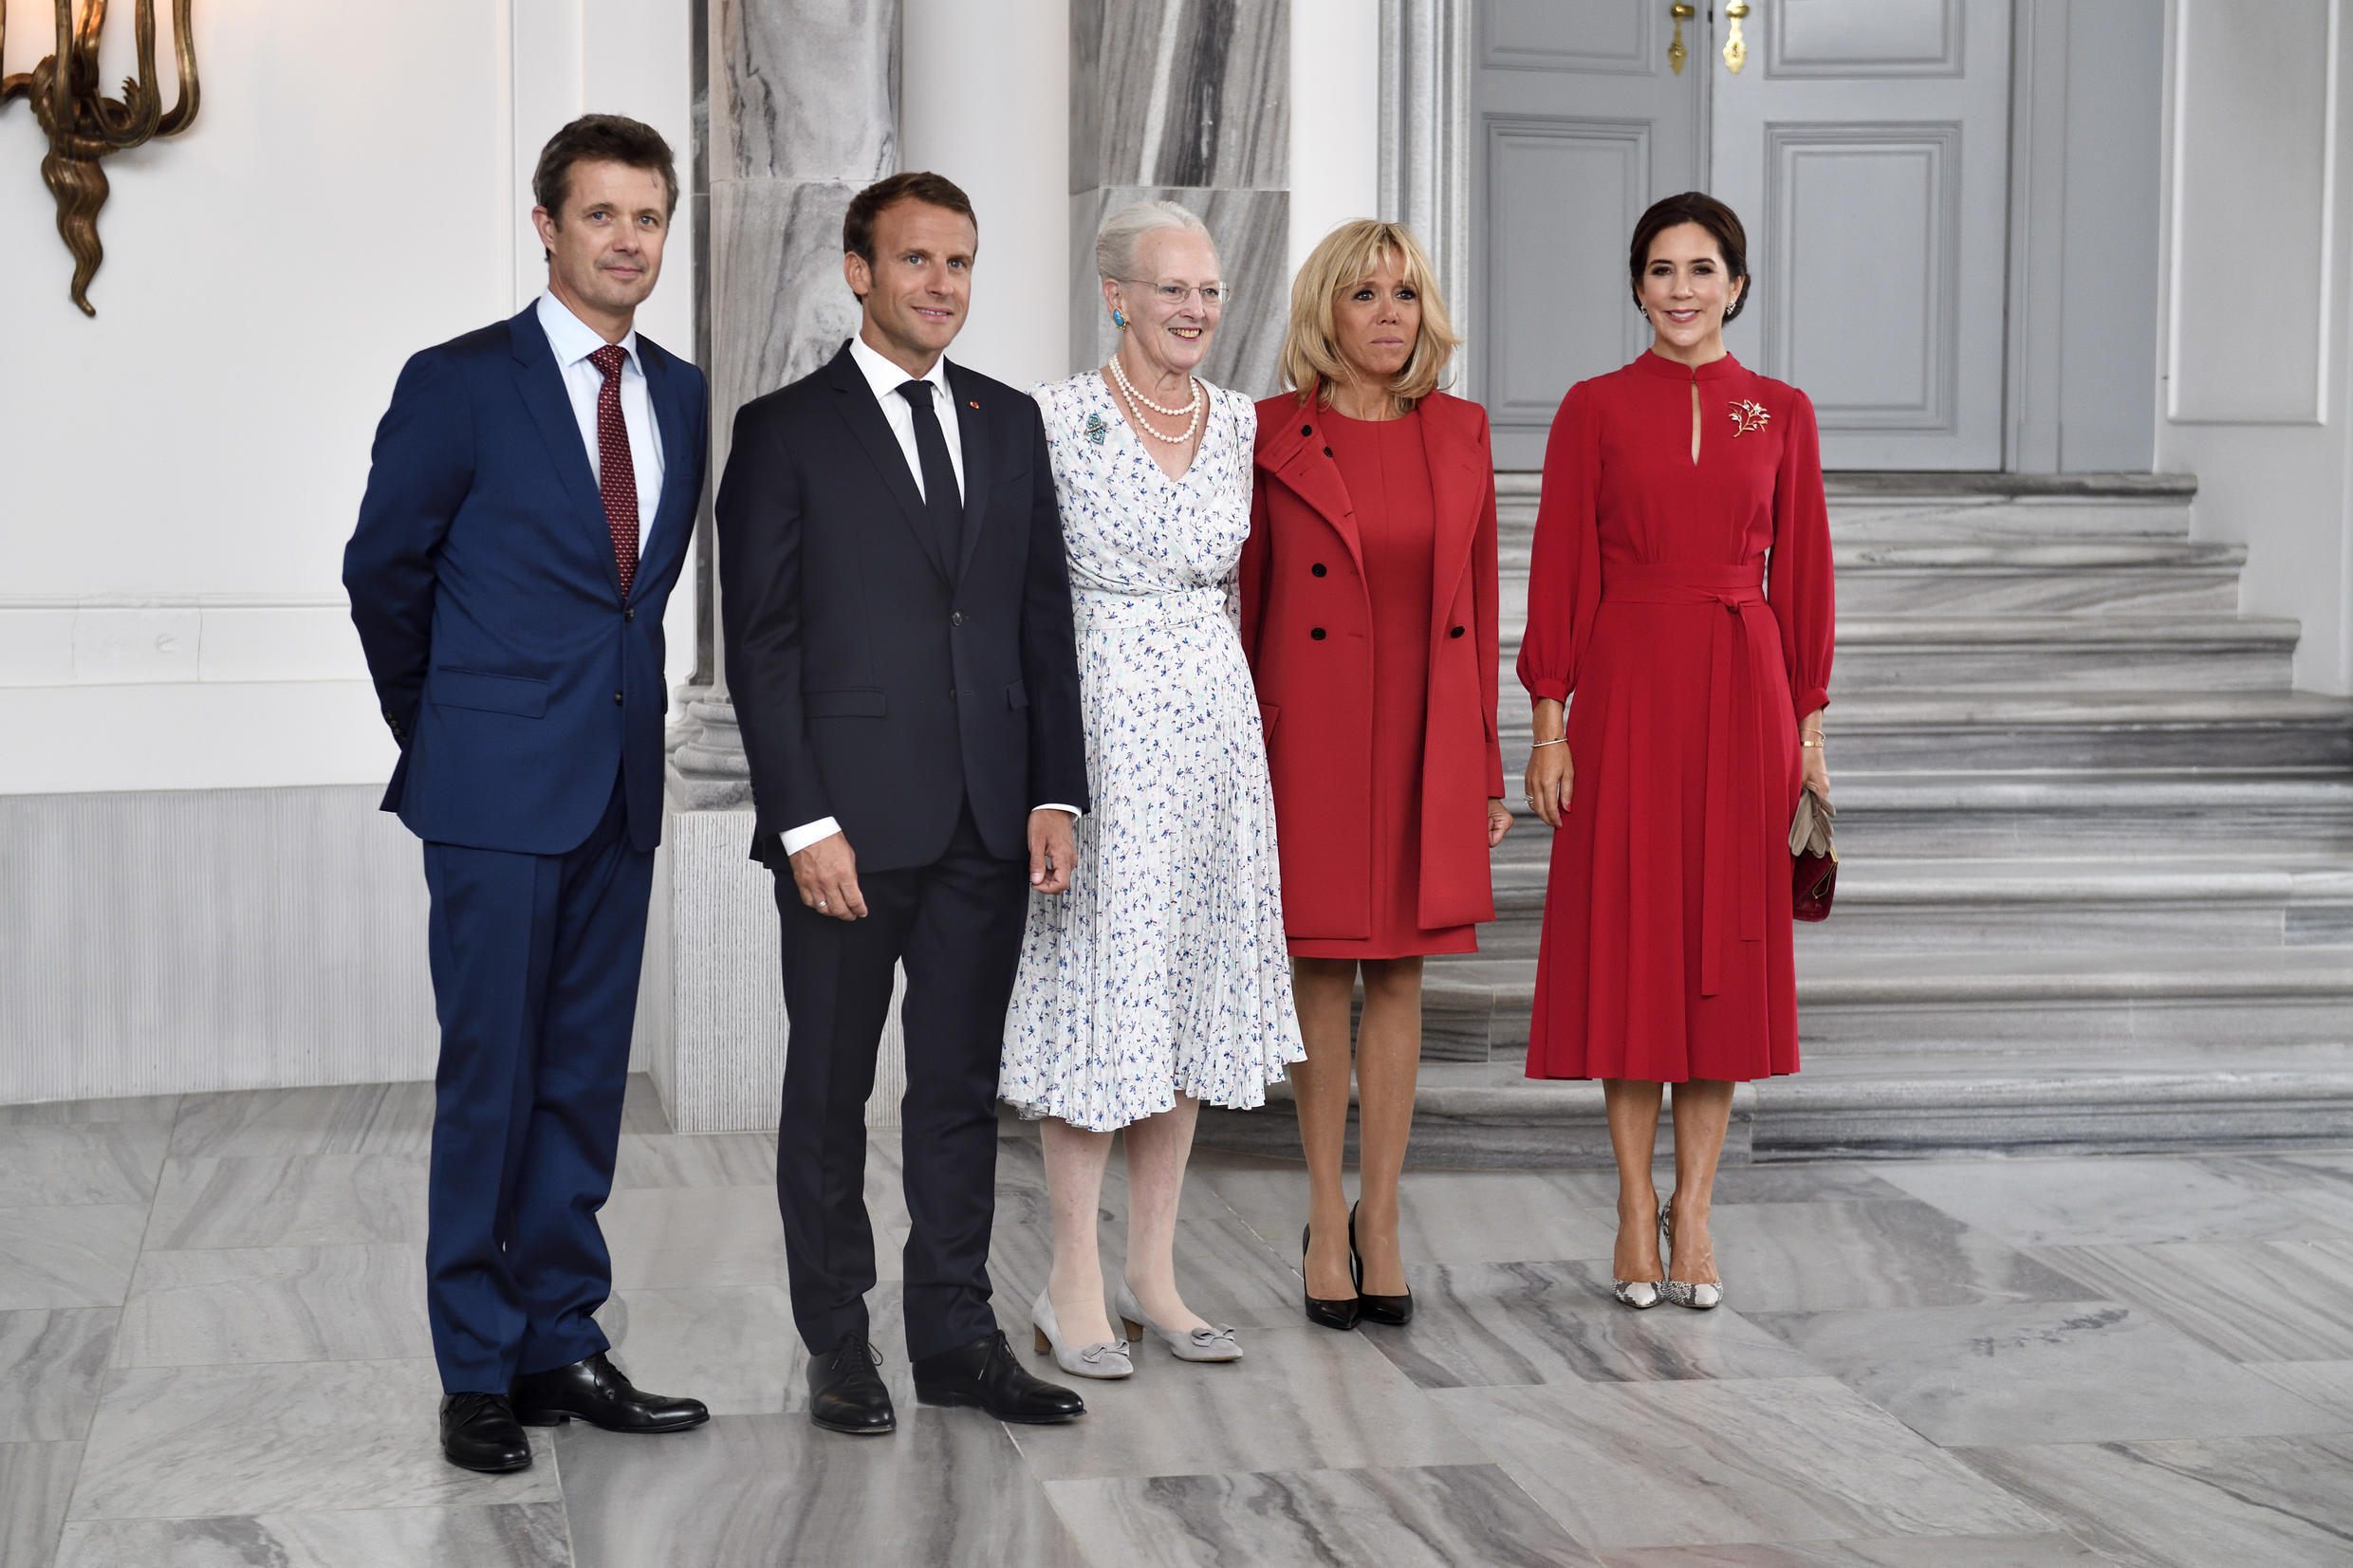 Queen Margrethe II of Denmark welcomes French President Emmanuel Macron and his wife Brigitte Macron at the Amalienborg Castle in central Copenhagen on August 28, 2018.